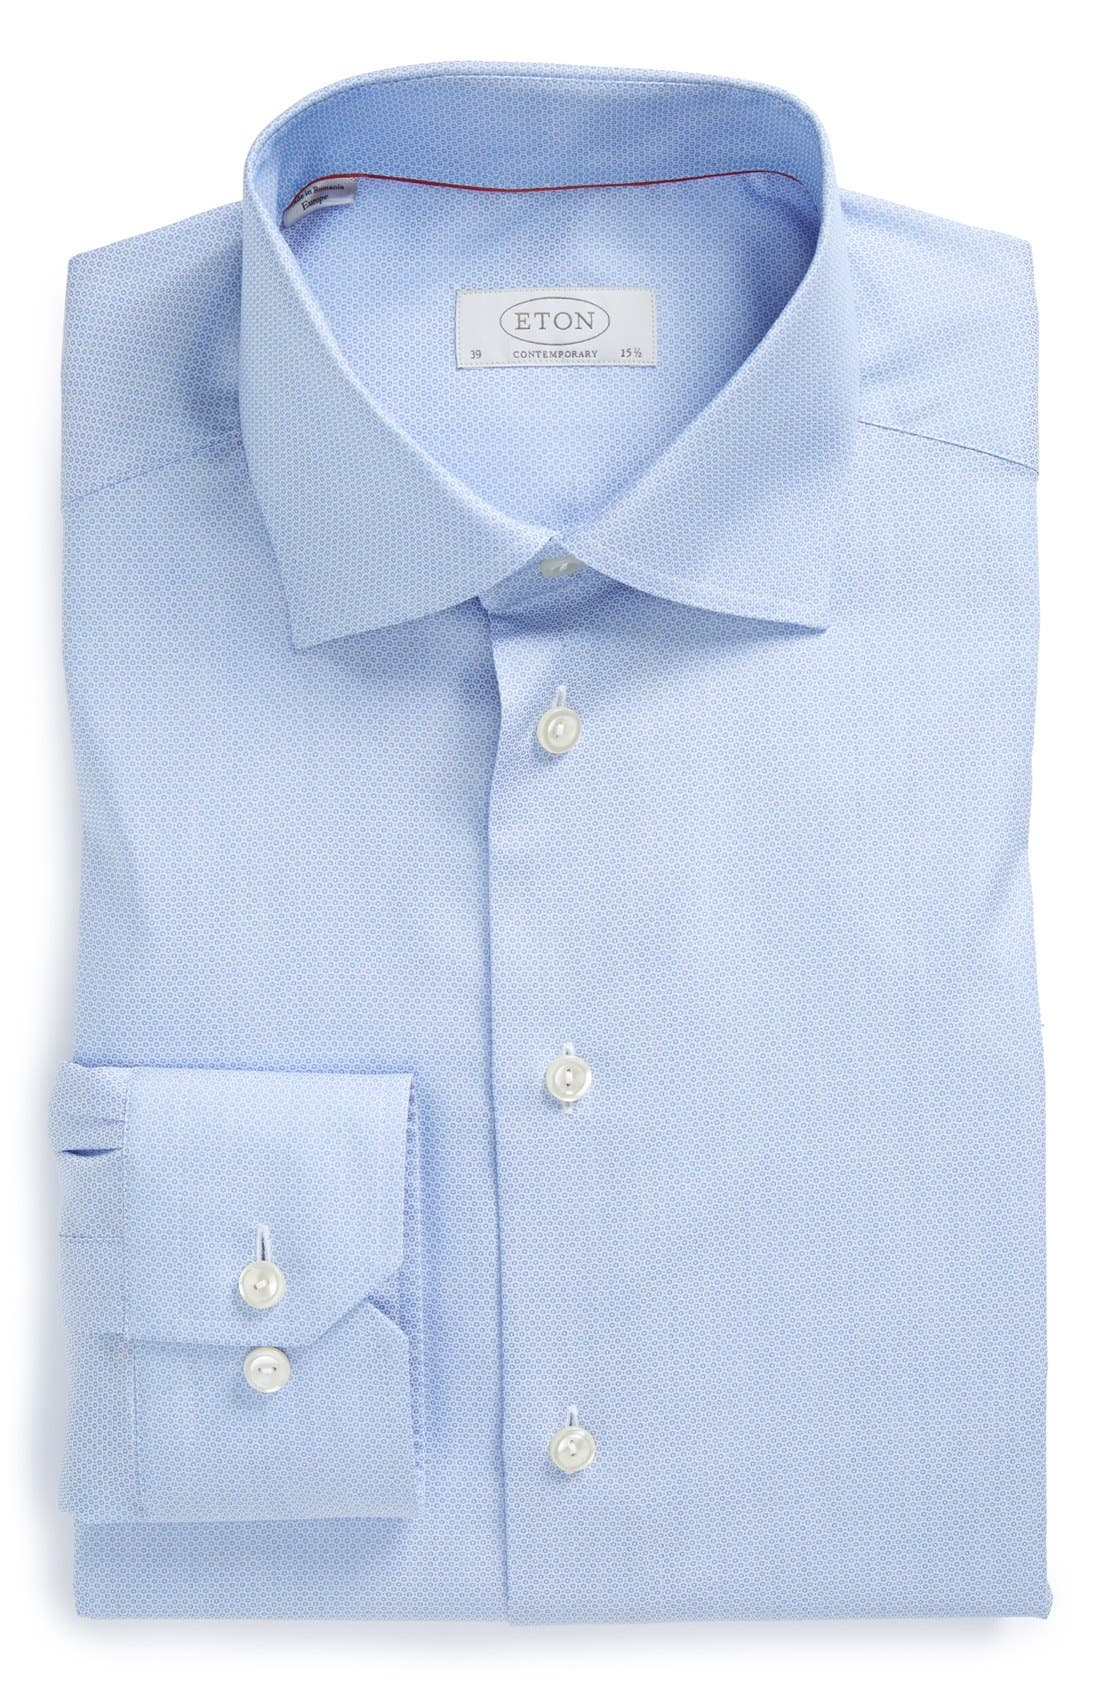 Contemporary Fit Textured Solid Dress Shirt,                         Main,                         color,